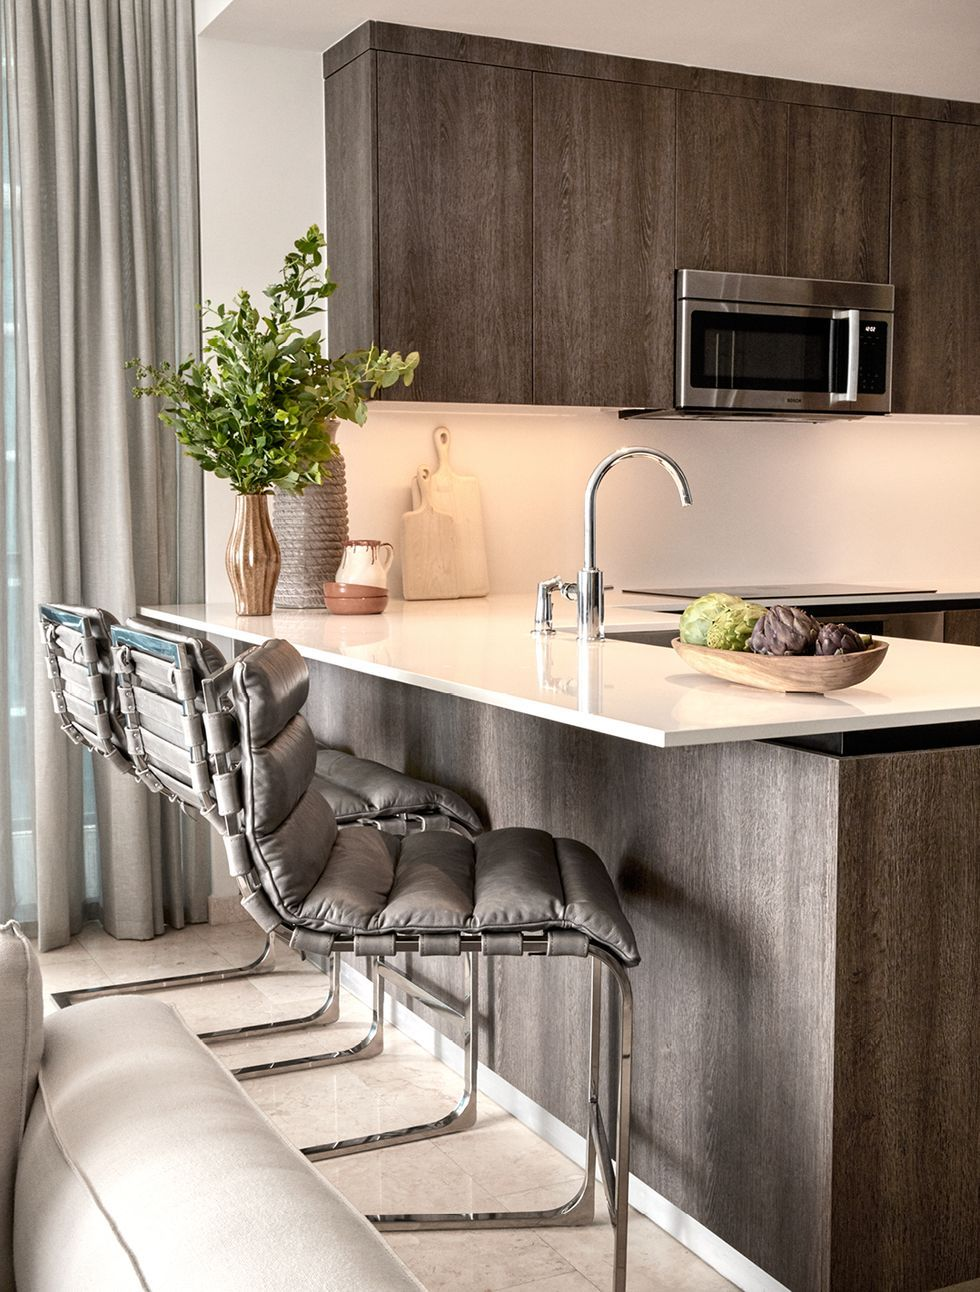 60 Creative Small Kitchen Ideas - Brilliant Small Space Hacks on Best Small Kitchens  id=60410